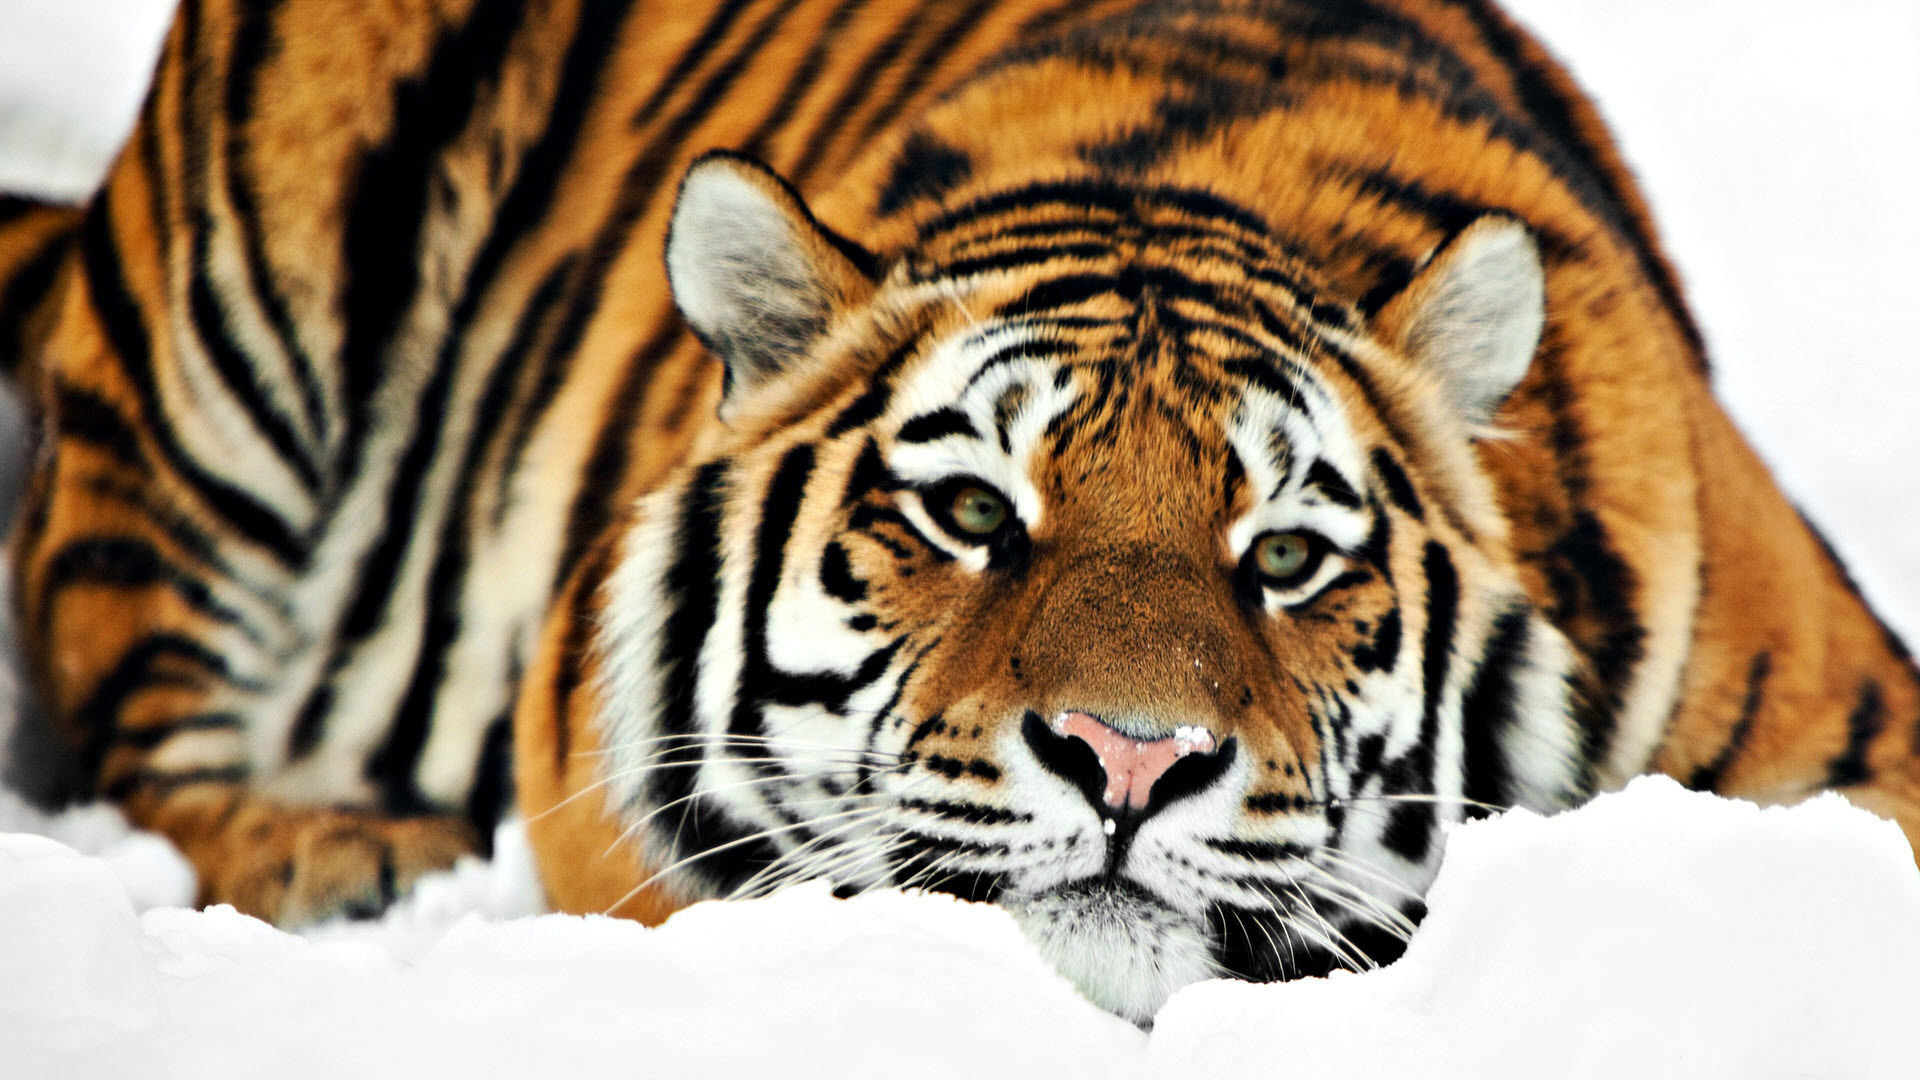 Download full hd Tiger computer wallpaper ID:115764 for free